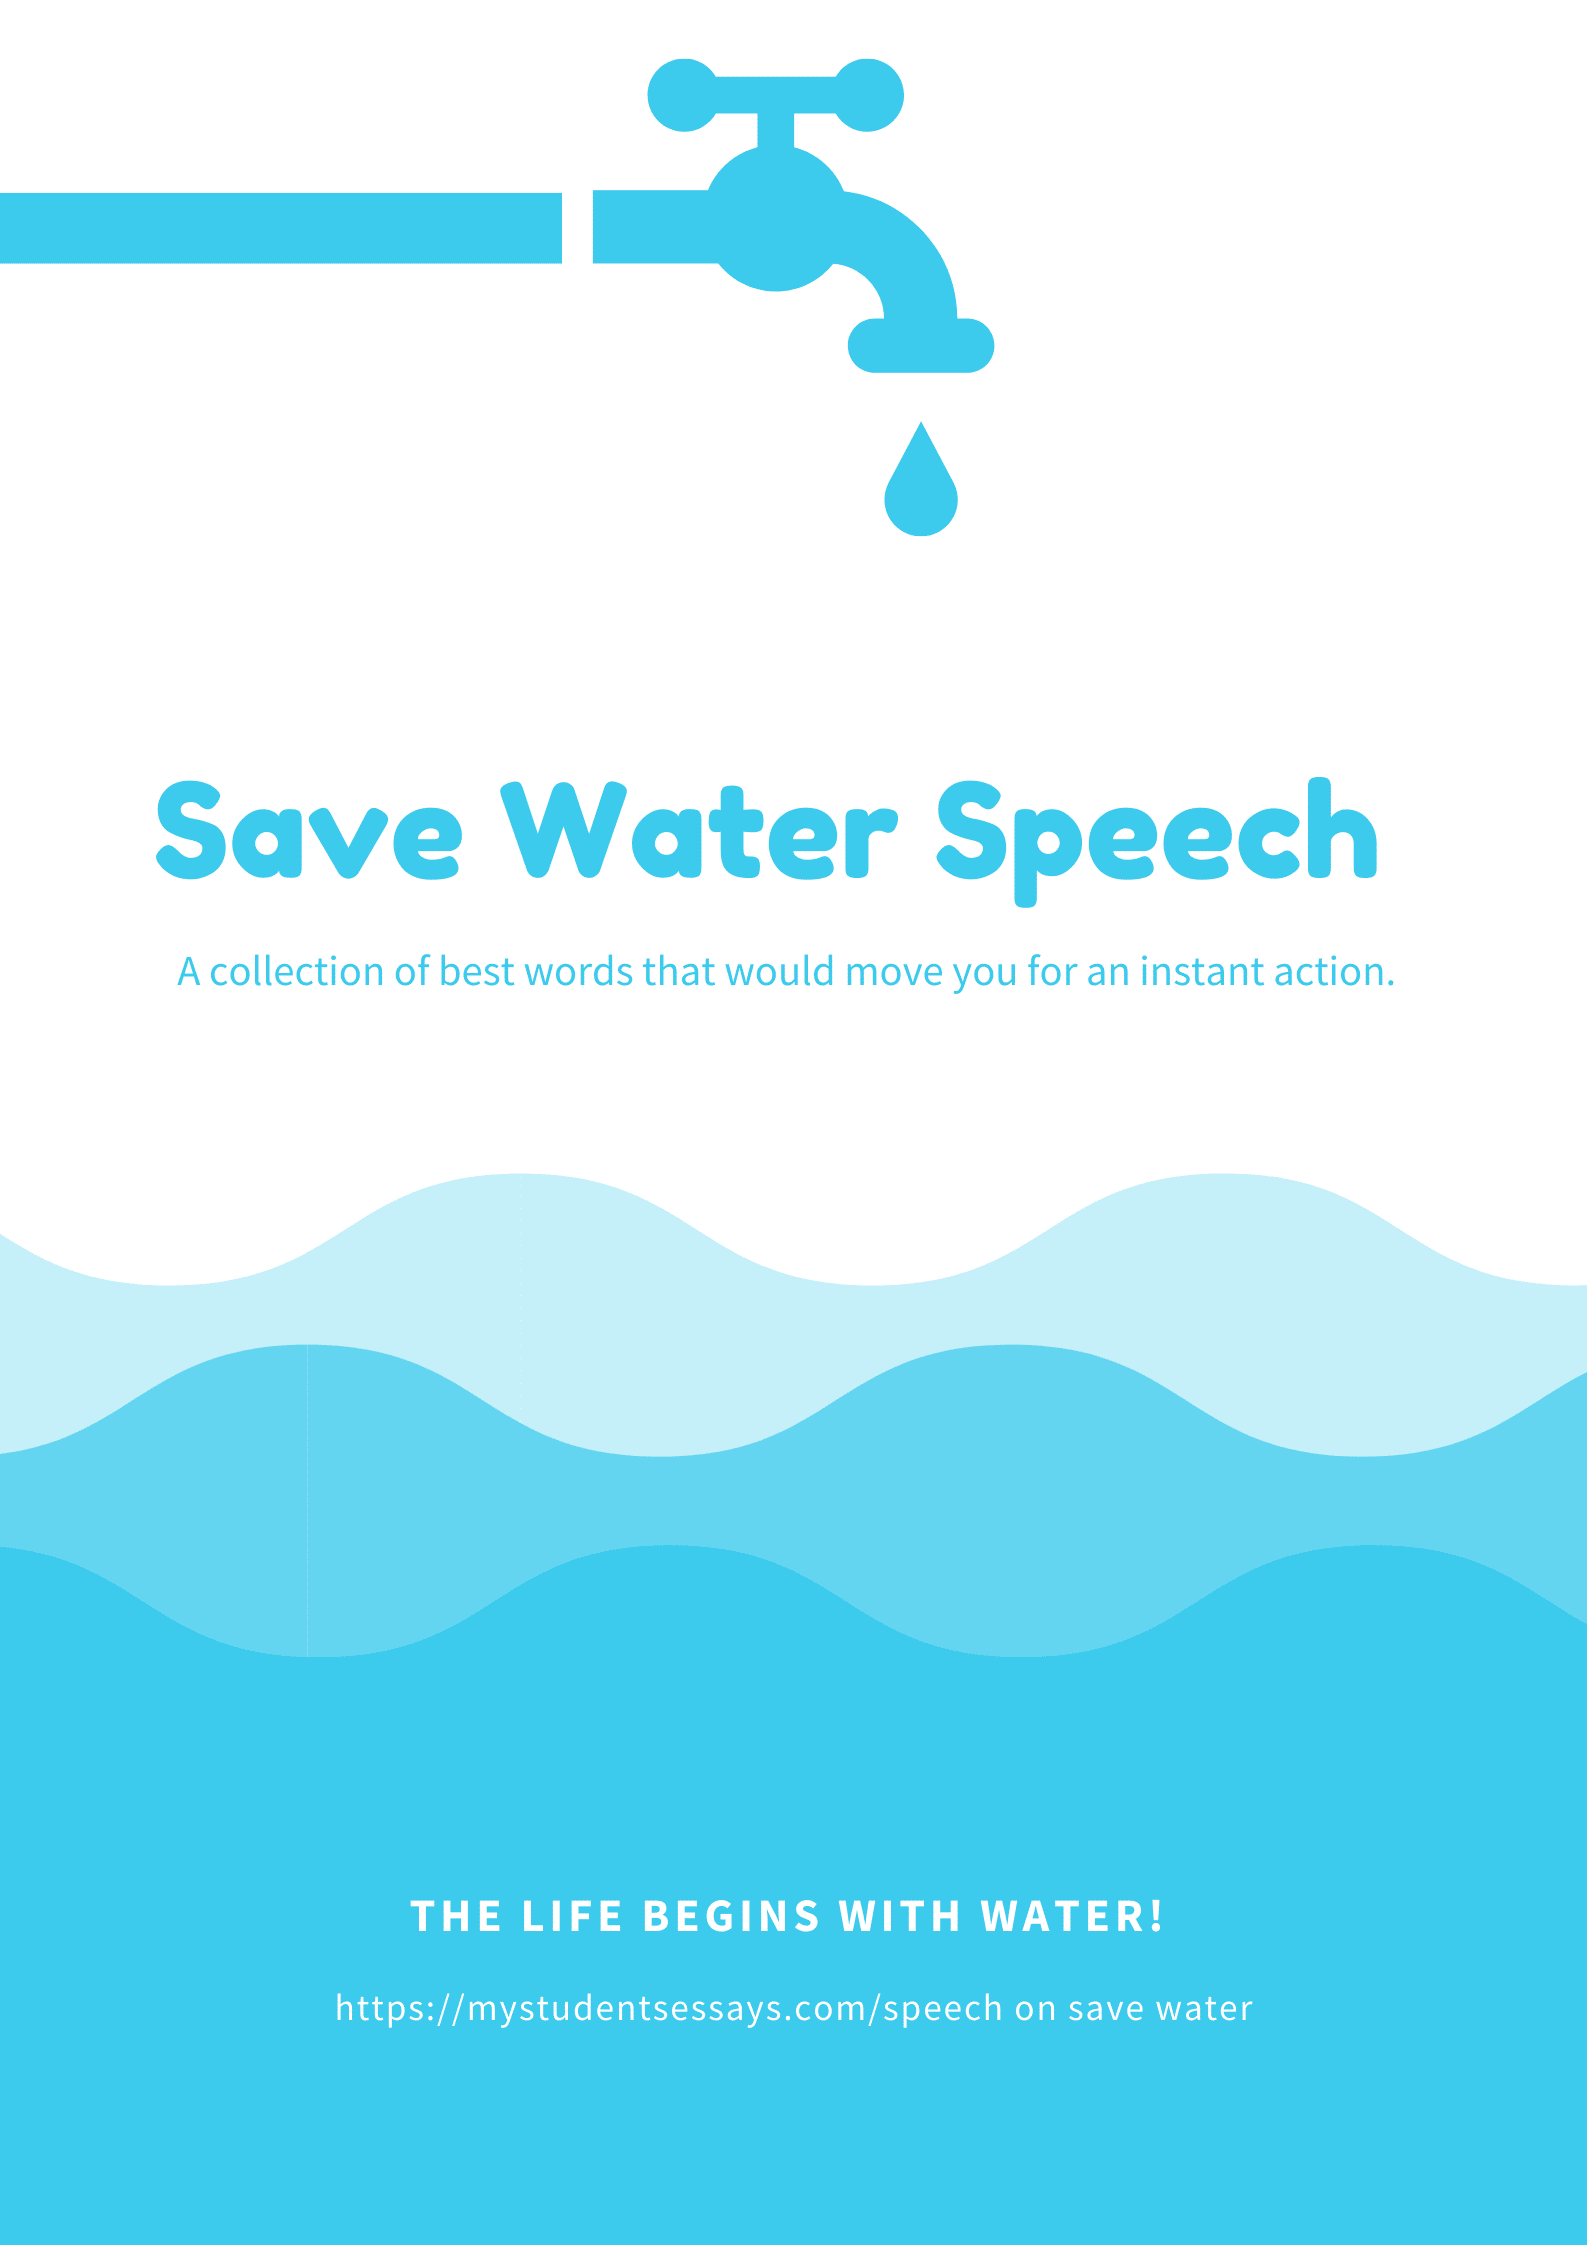 Best Speeches on Save water, its importance and need for the future